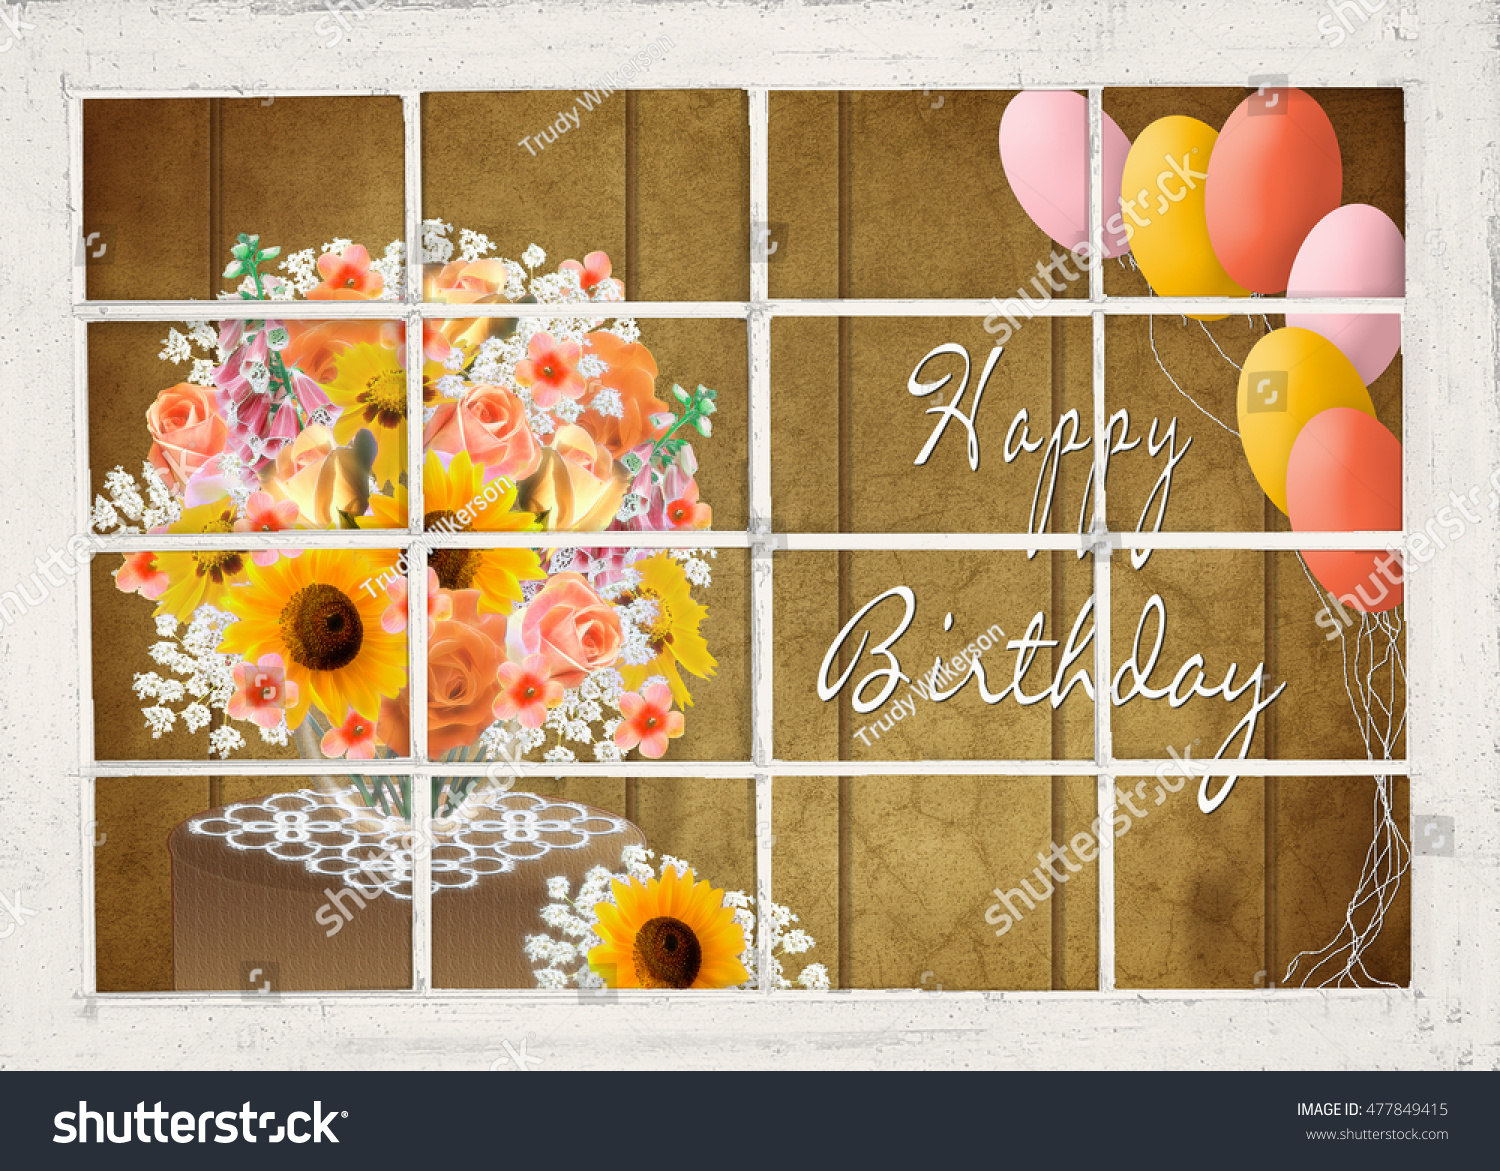 Birthday flower balloons note flowers have stock photo edit now birthday flower and balloons note flowers have fractals affects for interest fall season background izmirmasajfo